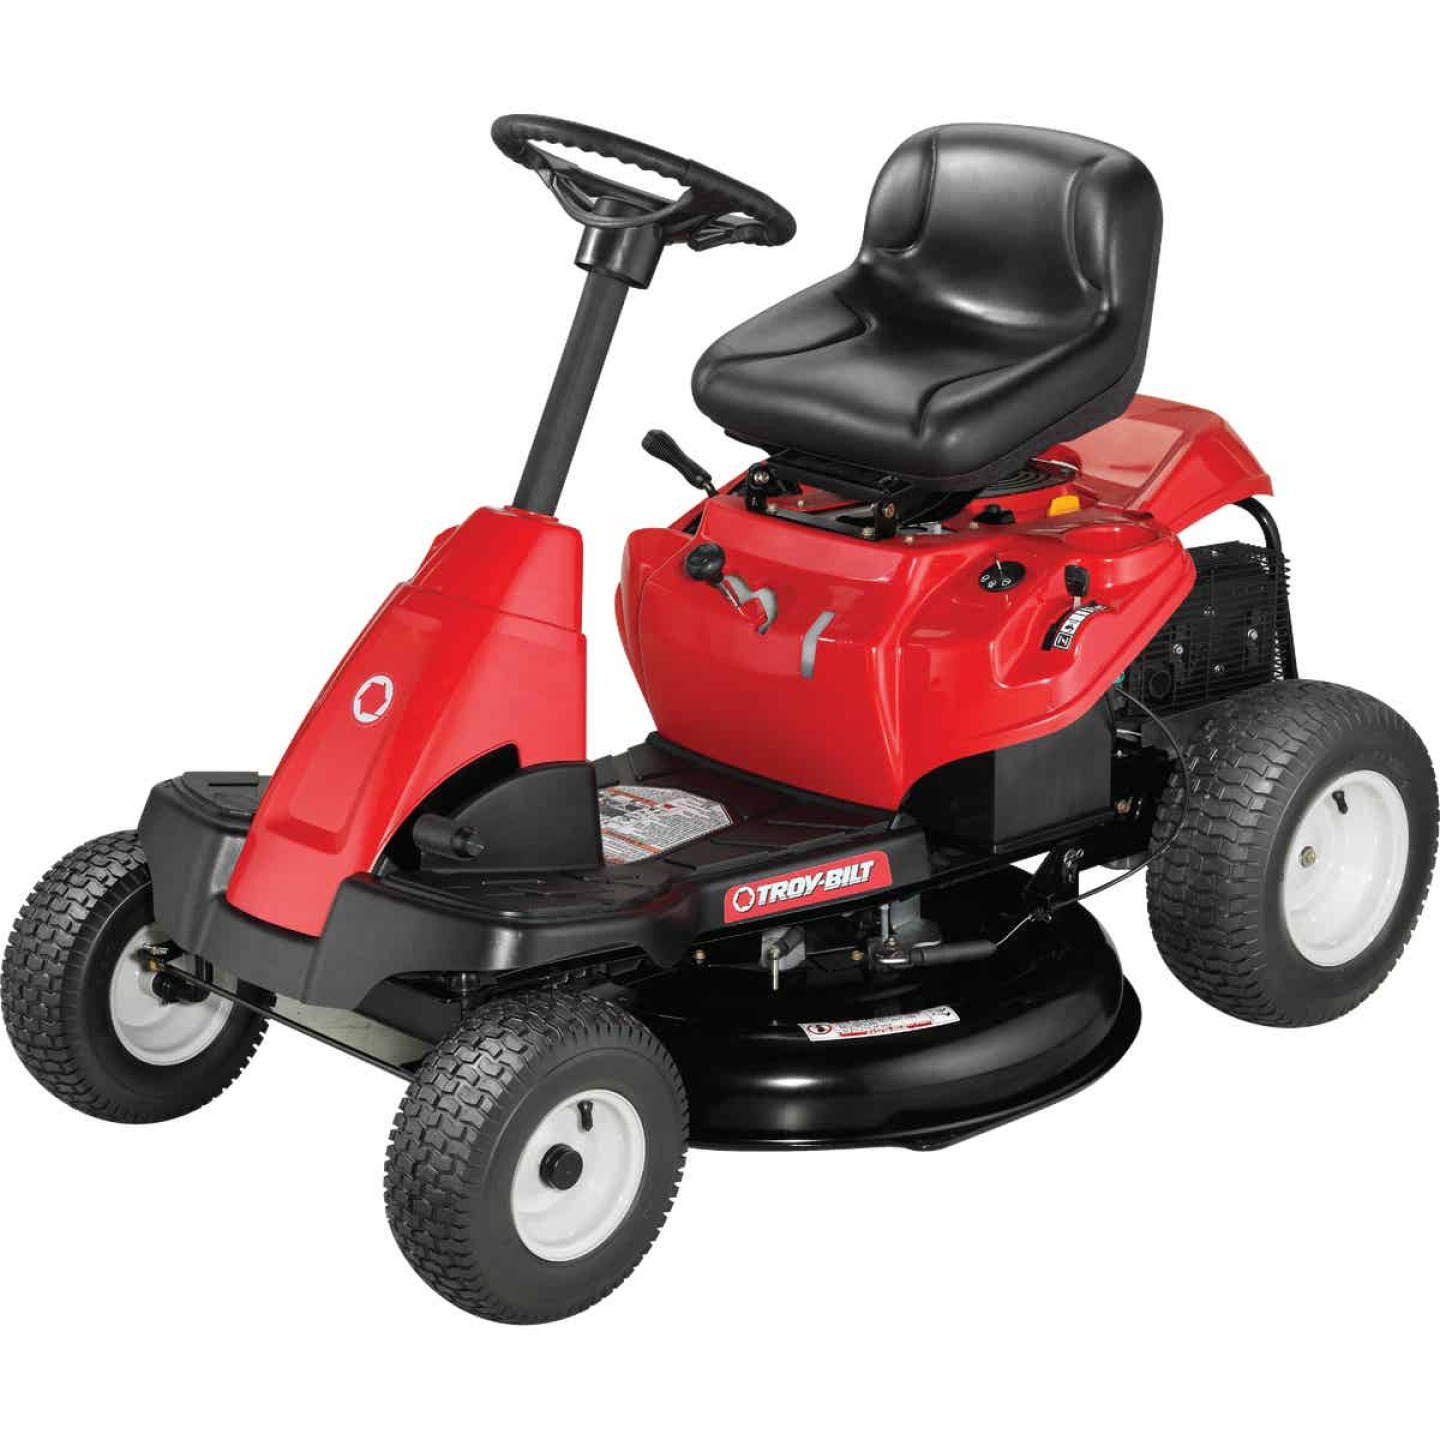 Troy-Bilt 30 In. 382cc Troy-Bilt Neighborhood Lawn Tractor Image 5